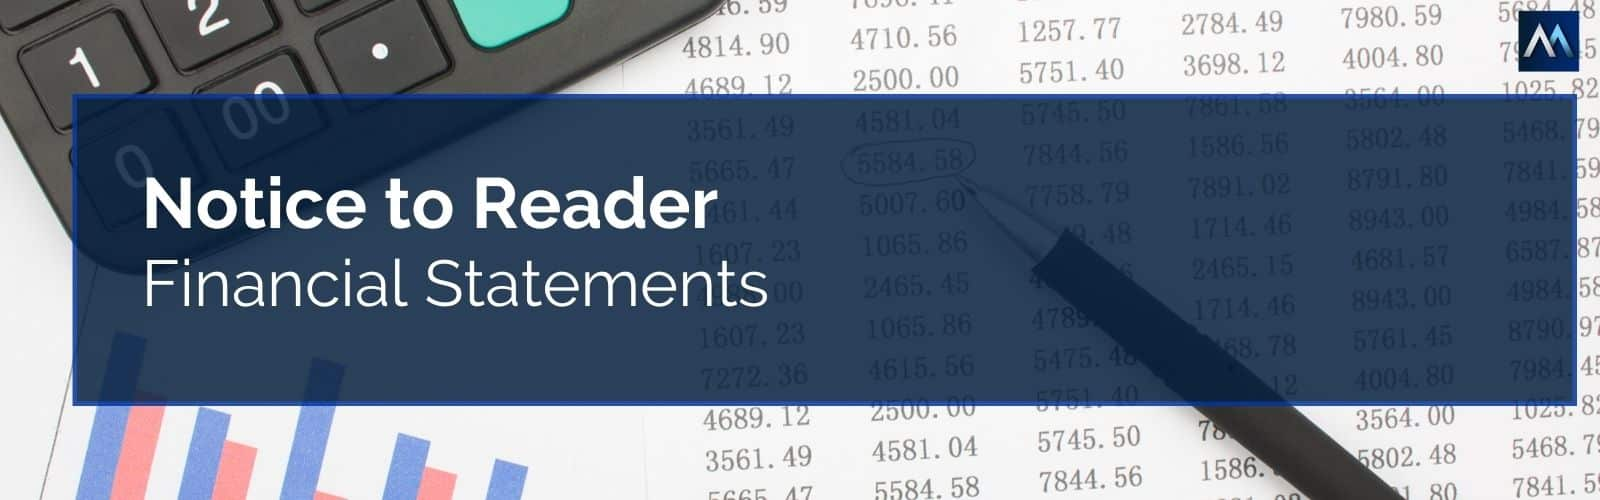 what is notice to reader financial statements?